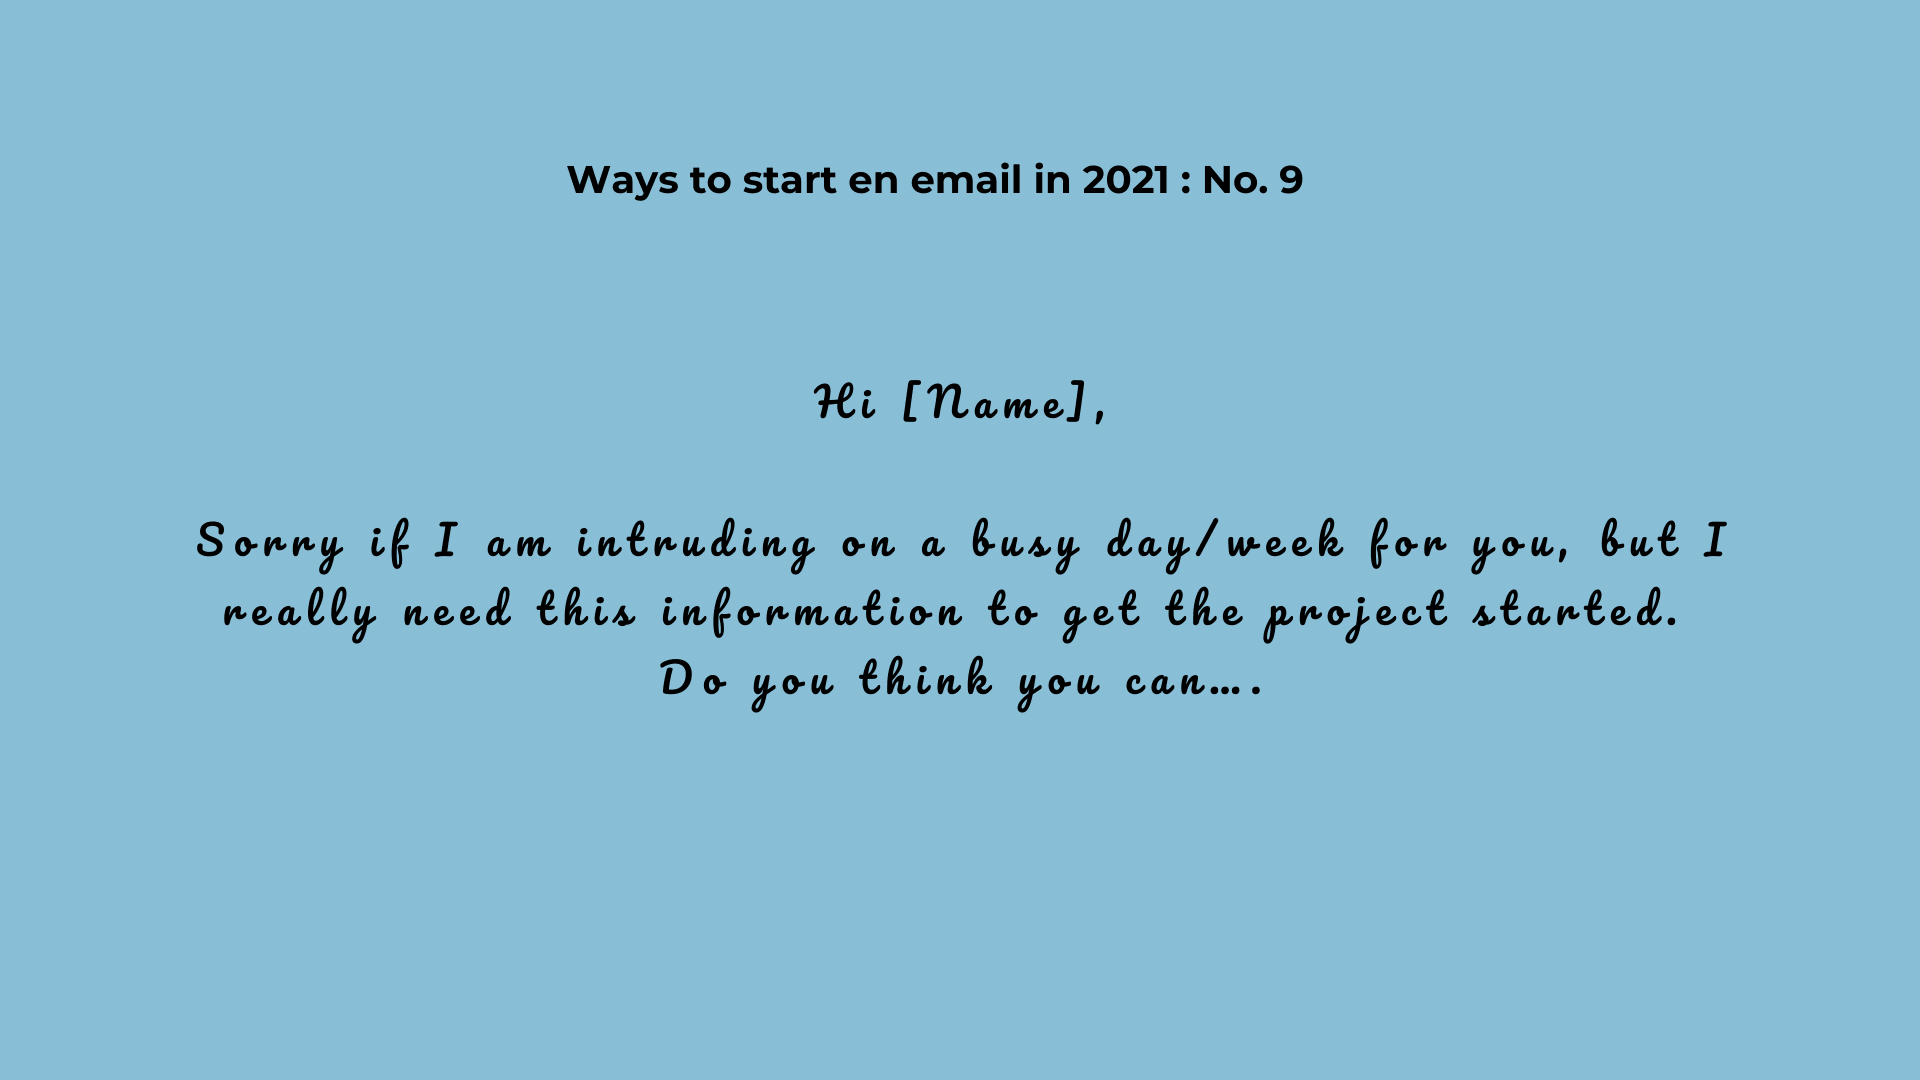 19-ways-to-start-an email-way9